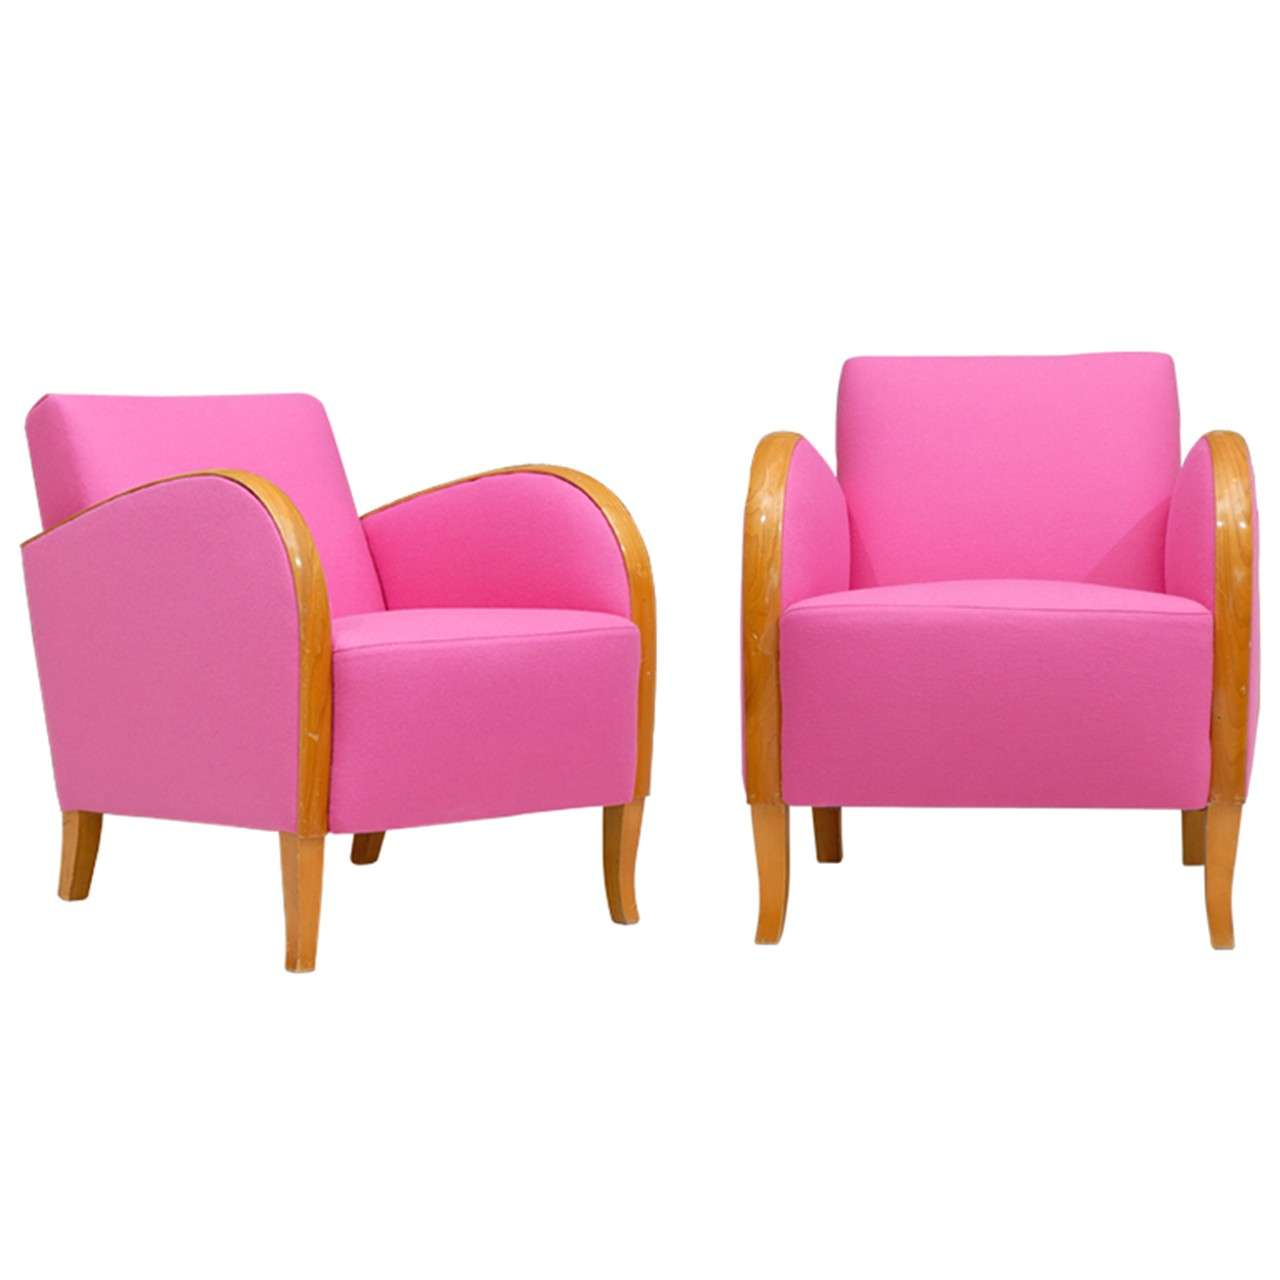 pink club chair gray nursery rocking hot deco chairs at 1stdibs